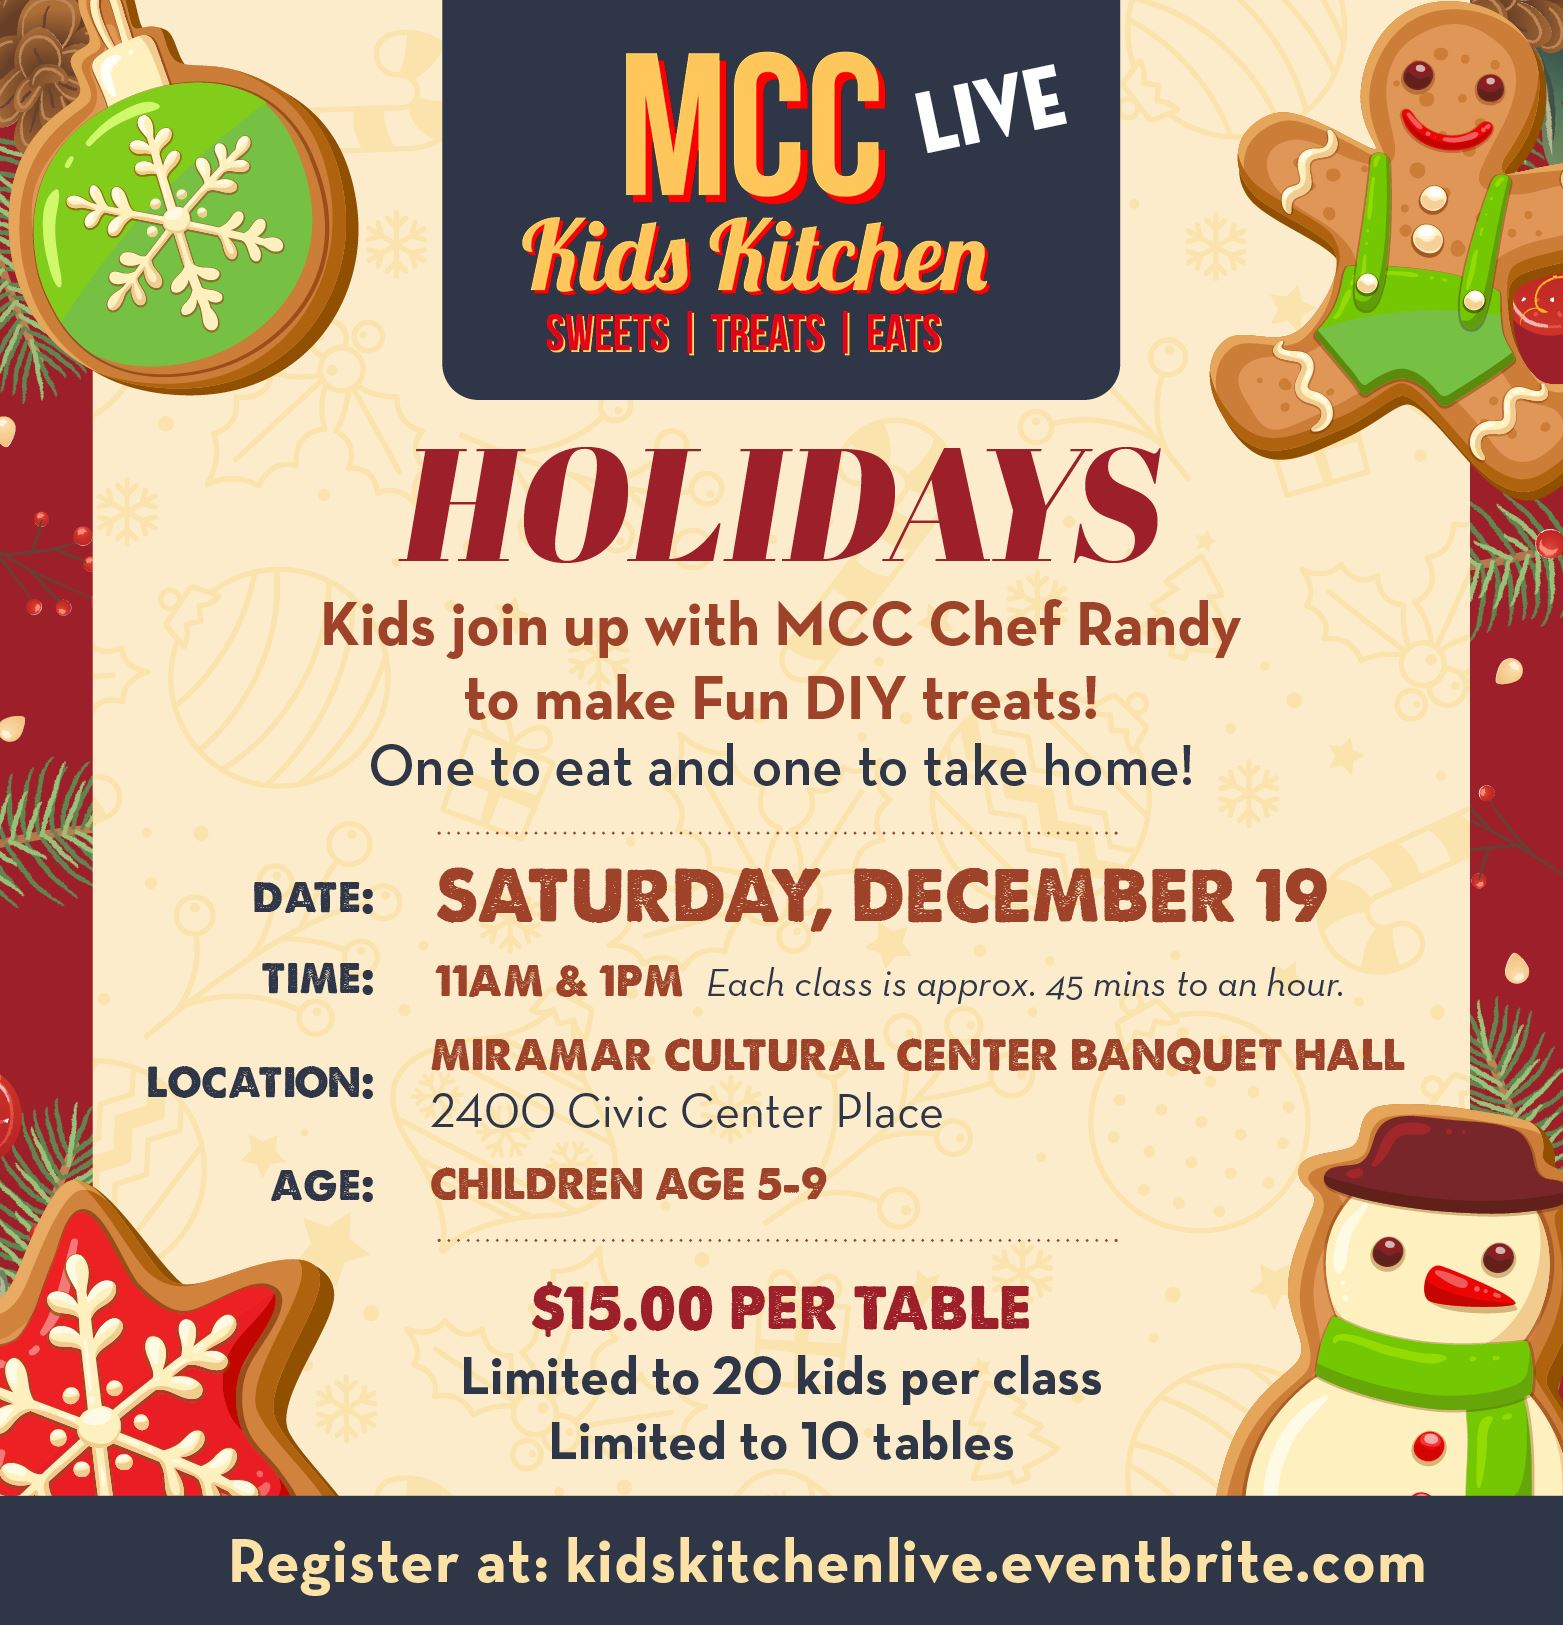 MCC-KidsKitchenLIVE-Dec-375x390